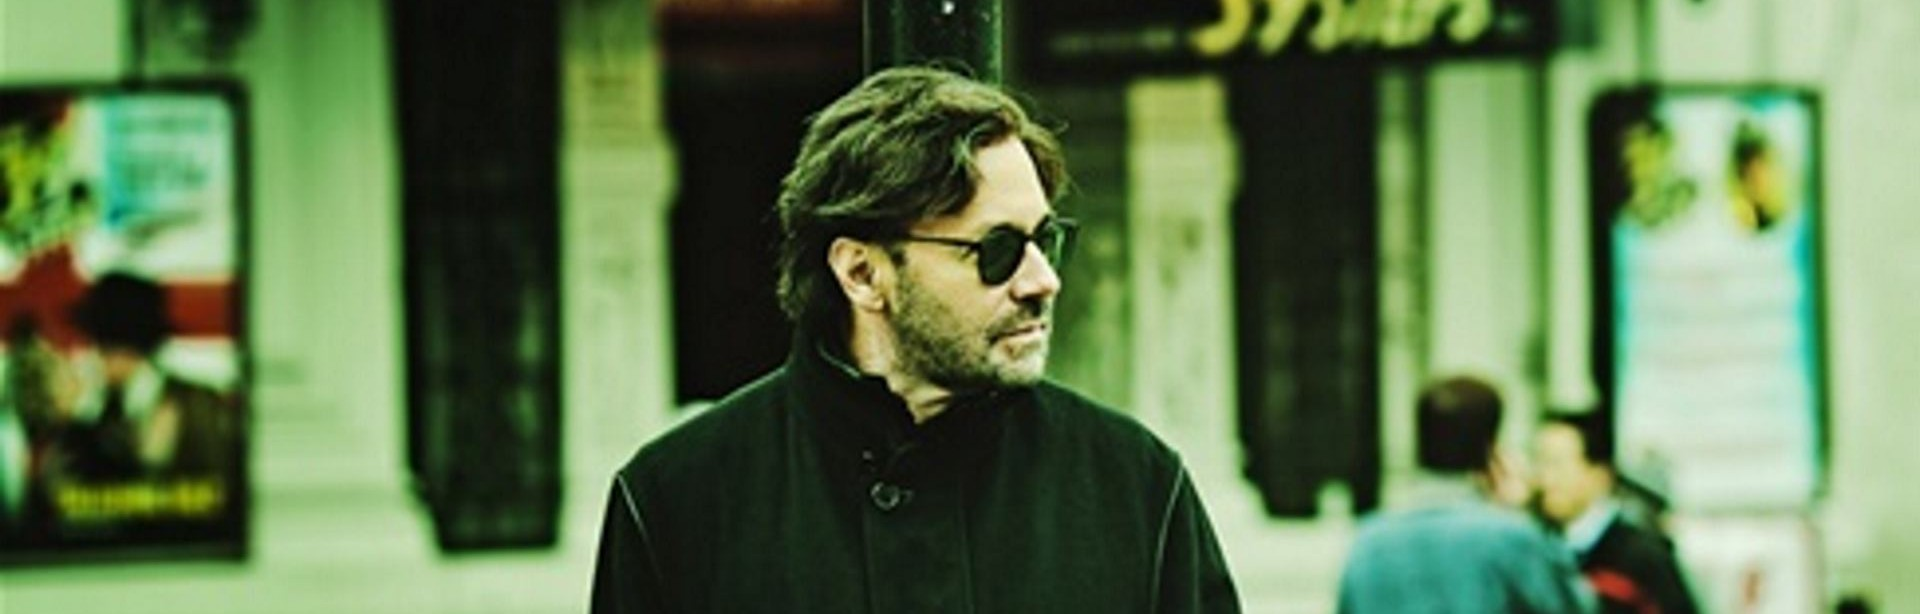 "VIDEO: LISINSKI Dođite na koncert ""Al Di Meola Plays Beatles & More"" 21. svibnja"